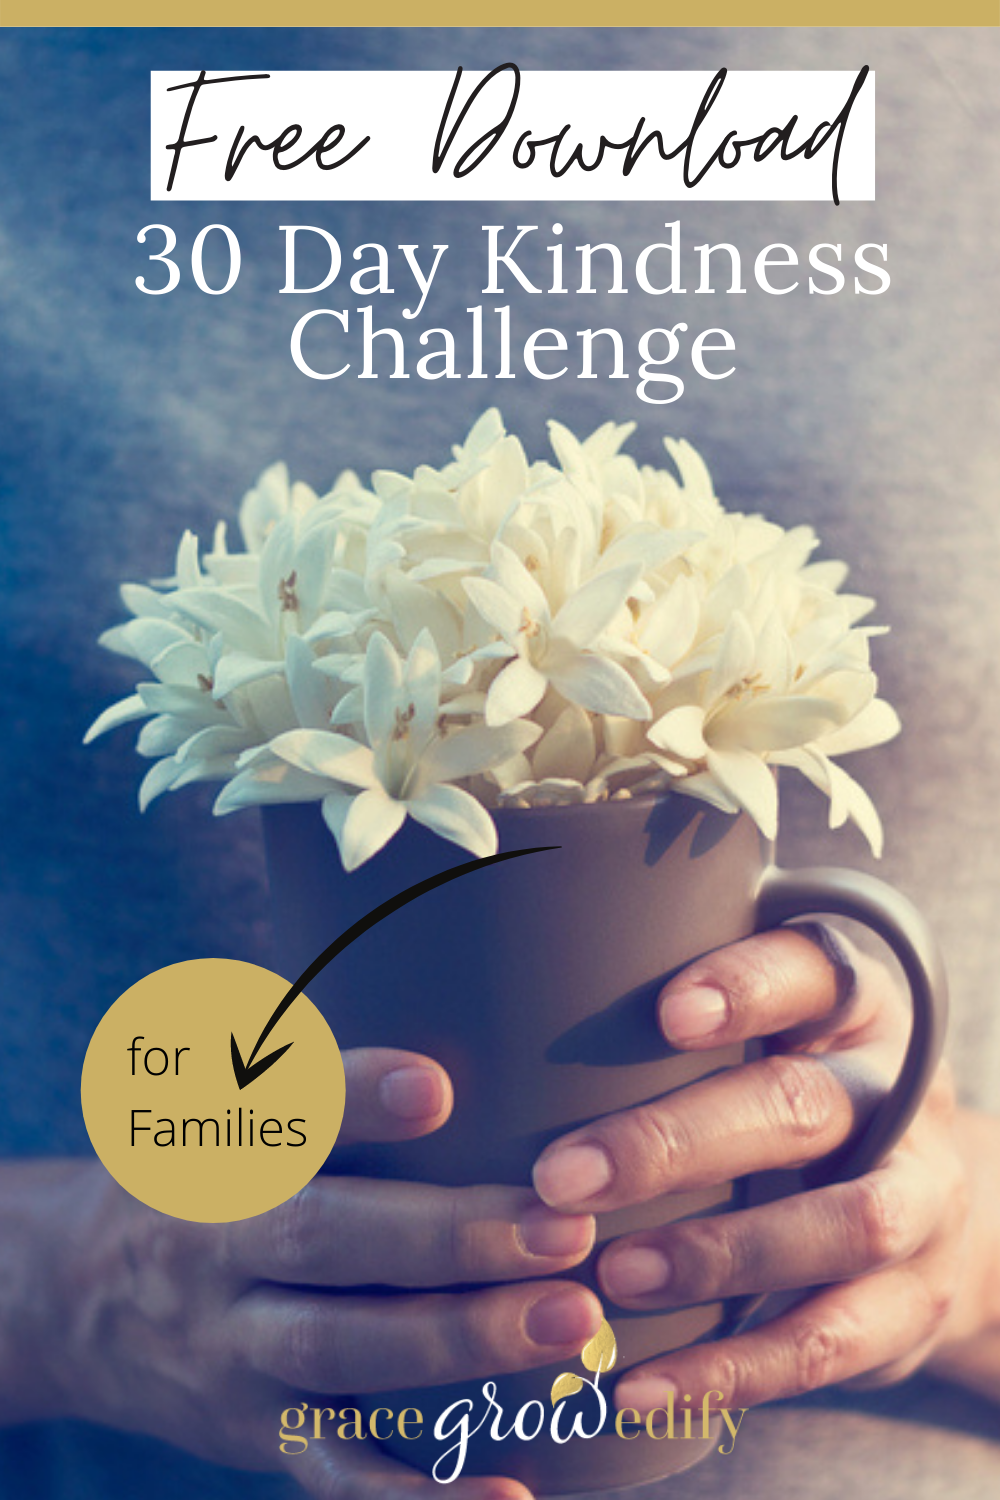 30 Day Kindness Challenge for Families